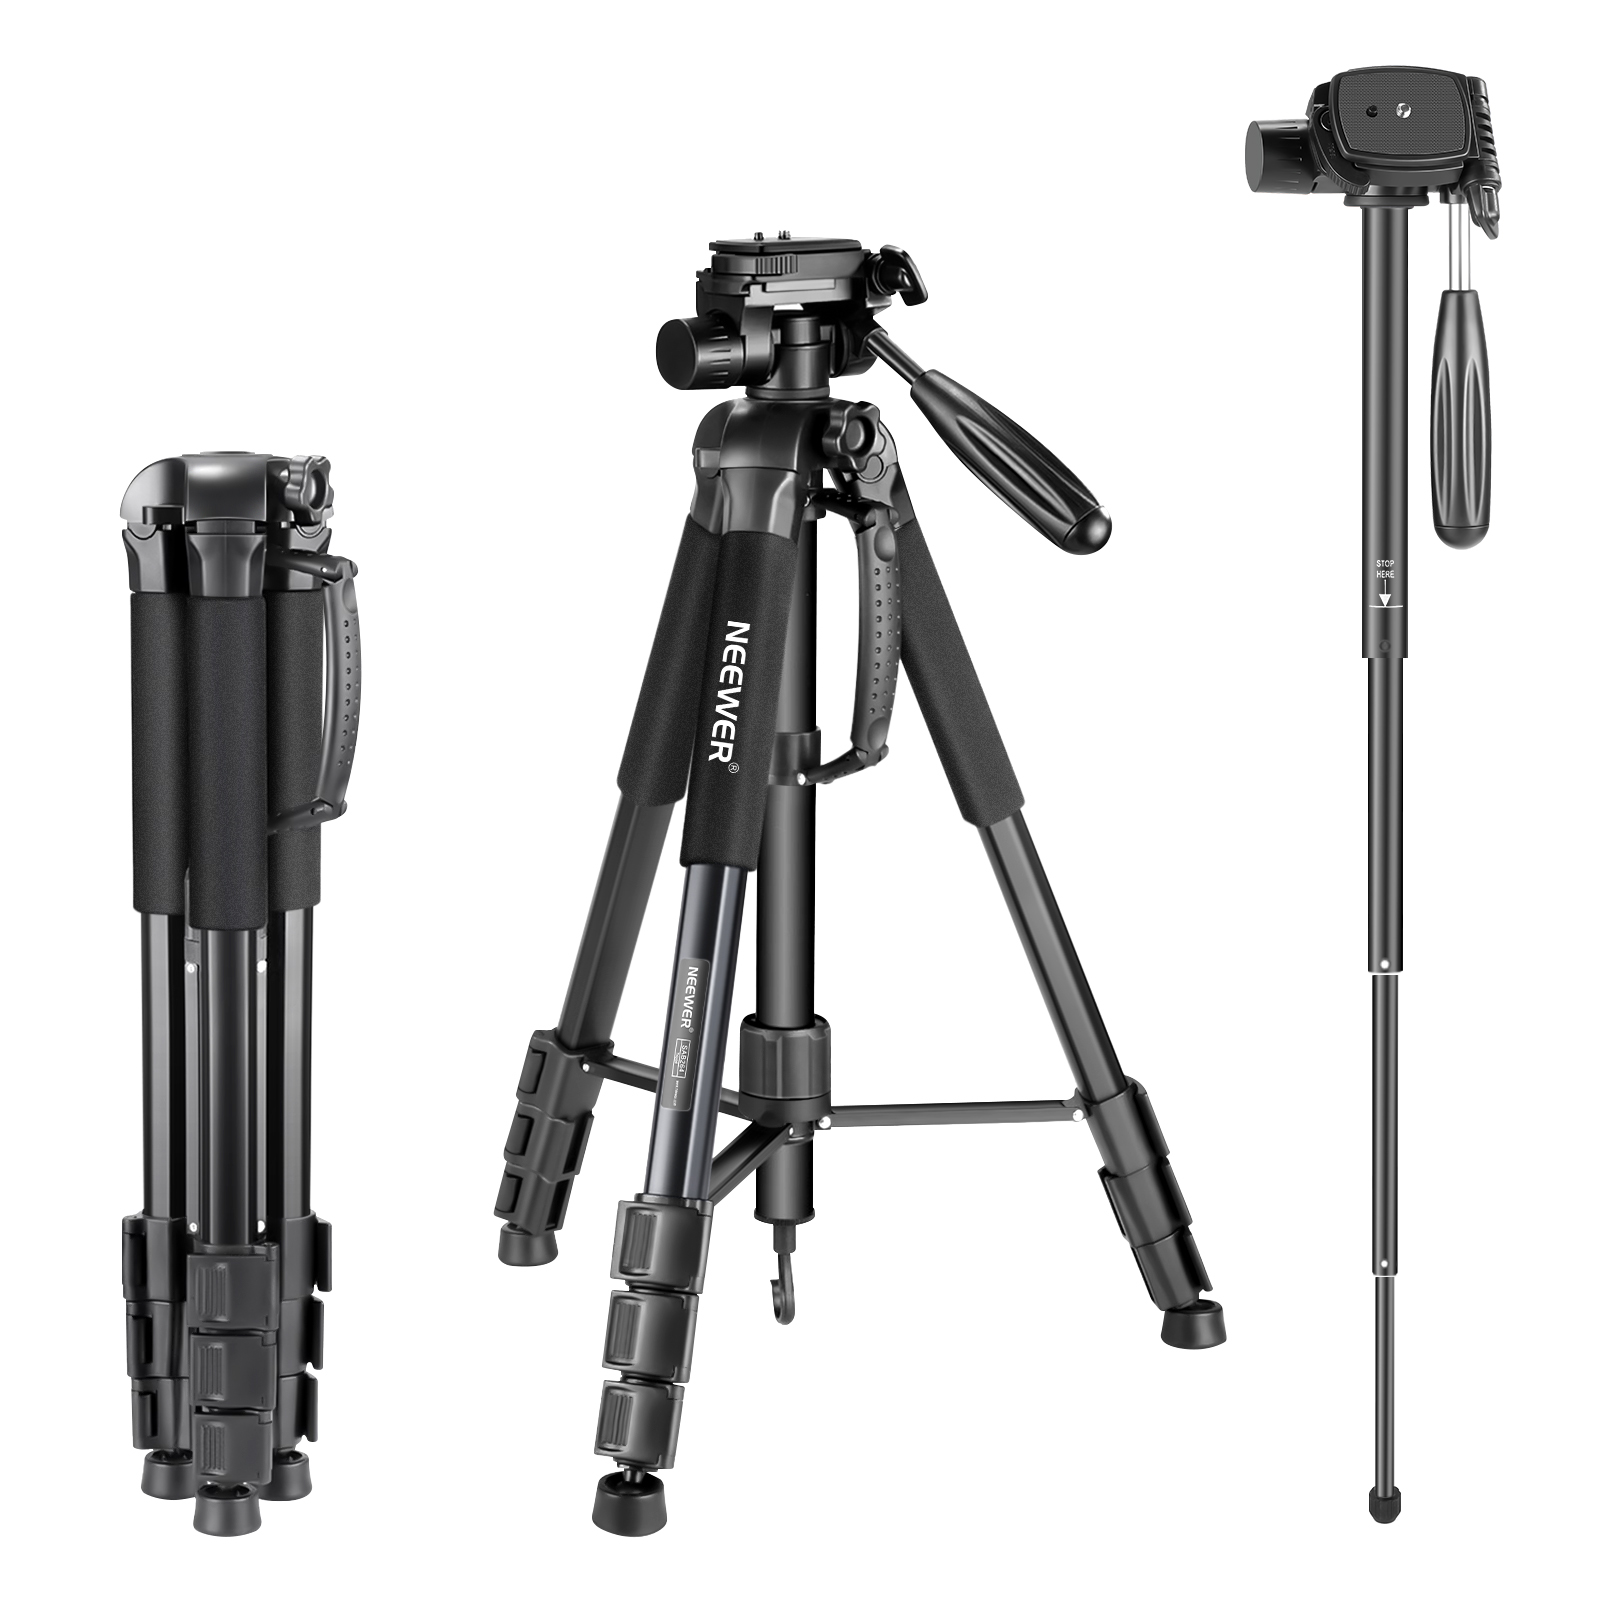 Neewer Portable 70 inches/177 centimeters Aluminum Alloy Camera Tripod Monopod with 3-Way Swivel Pan Head and Carry Bag Image